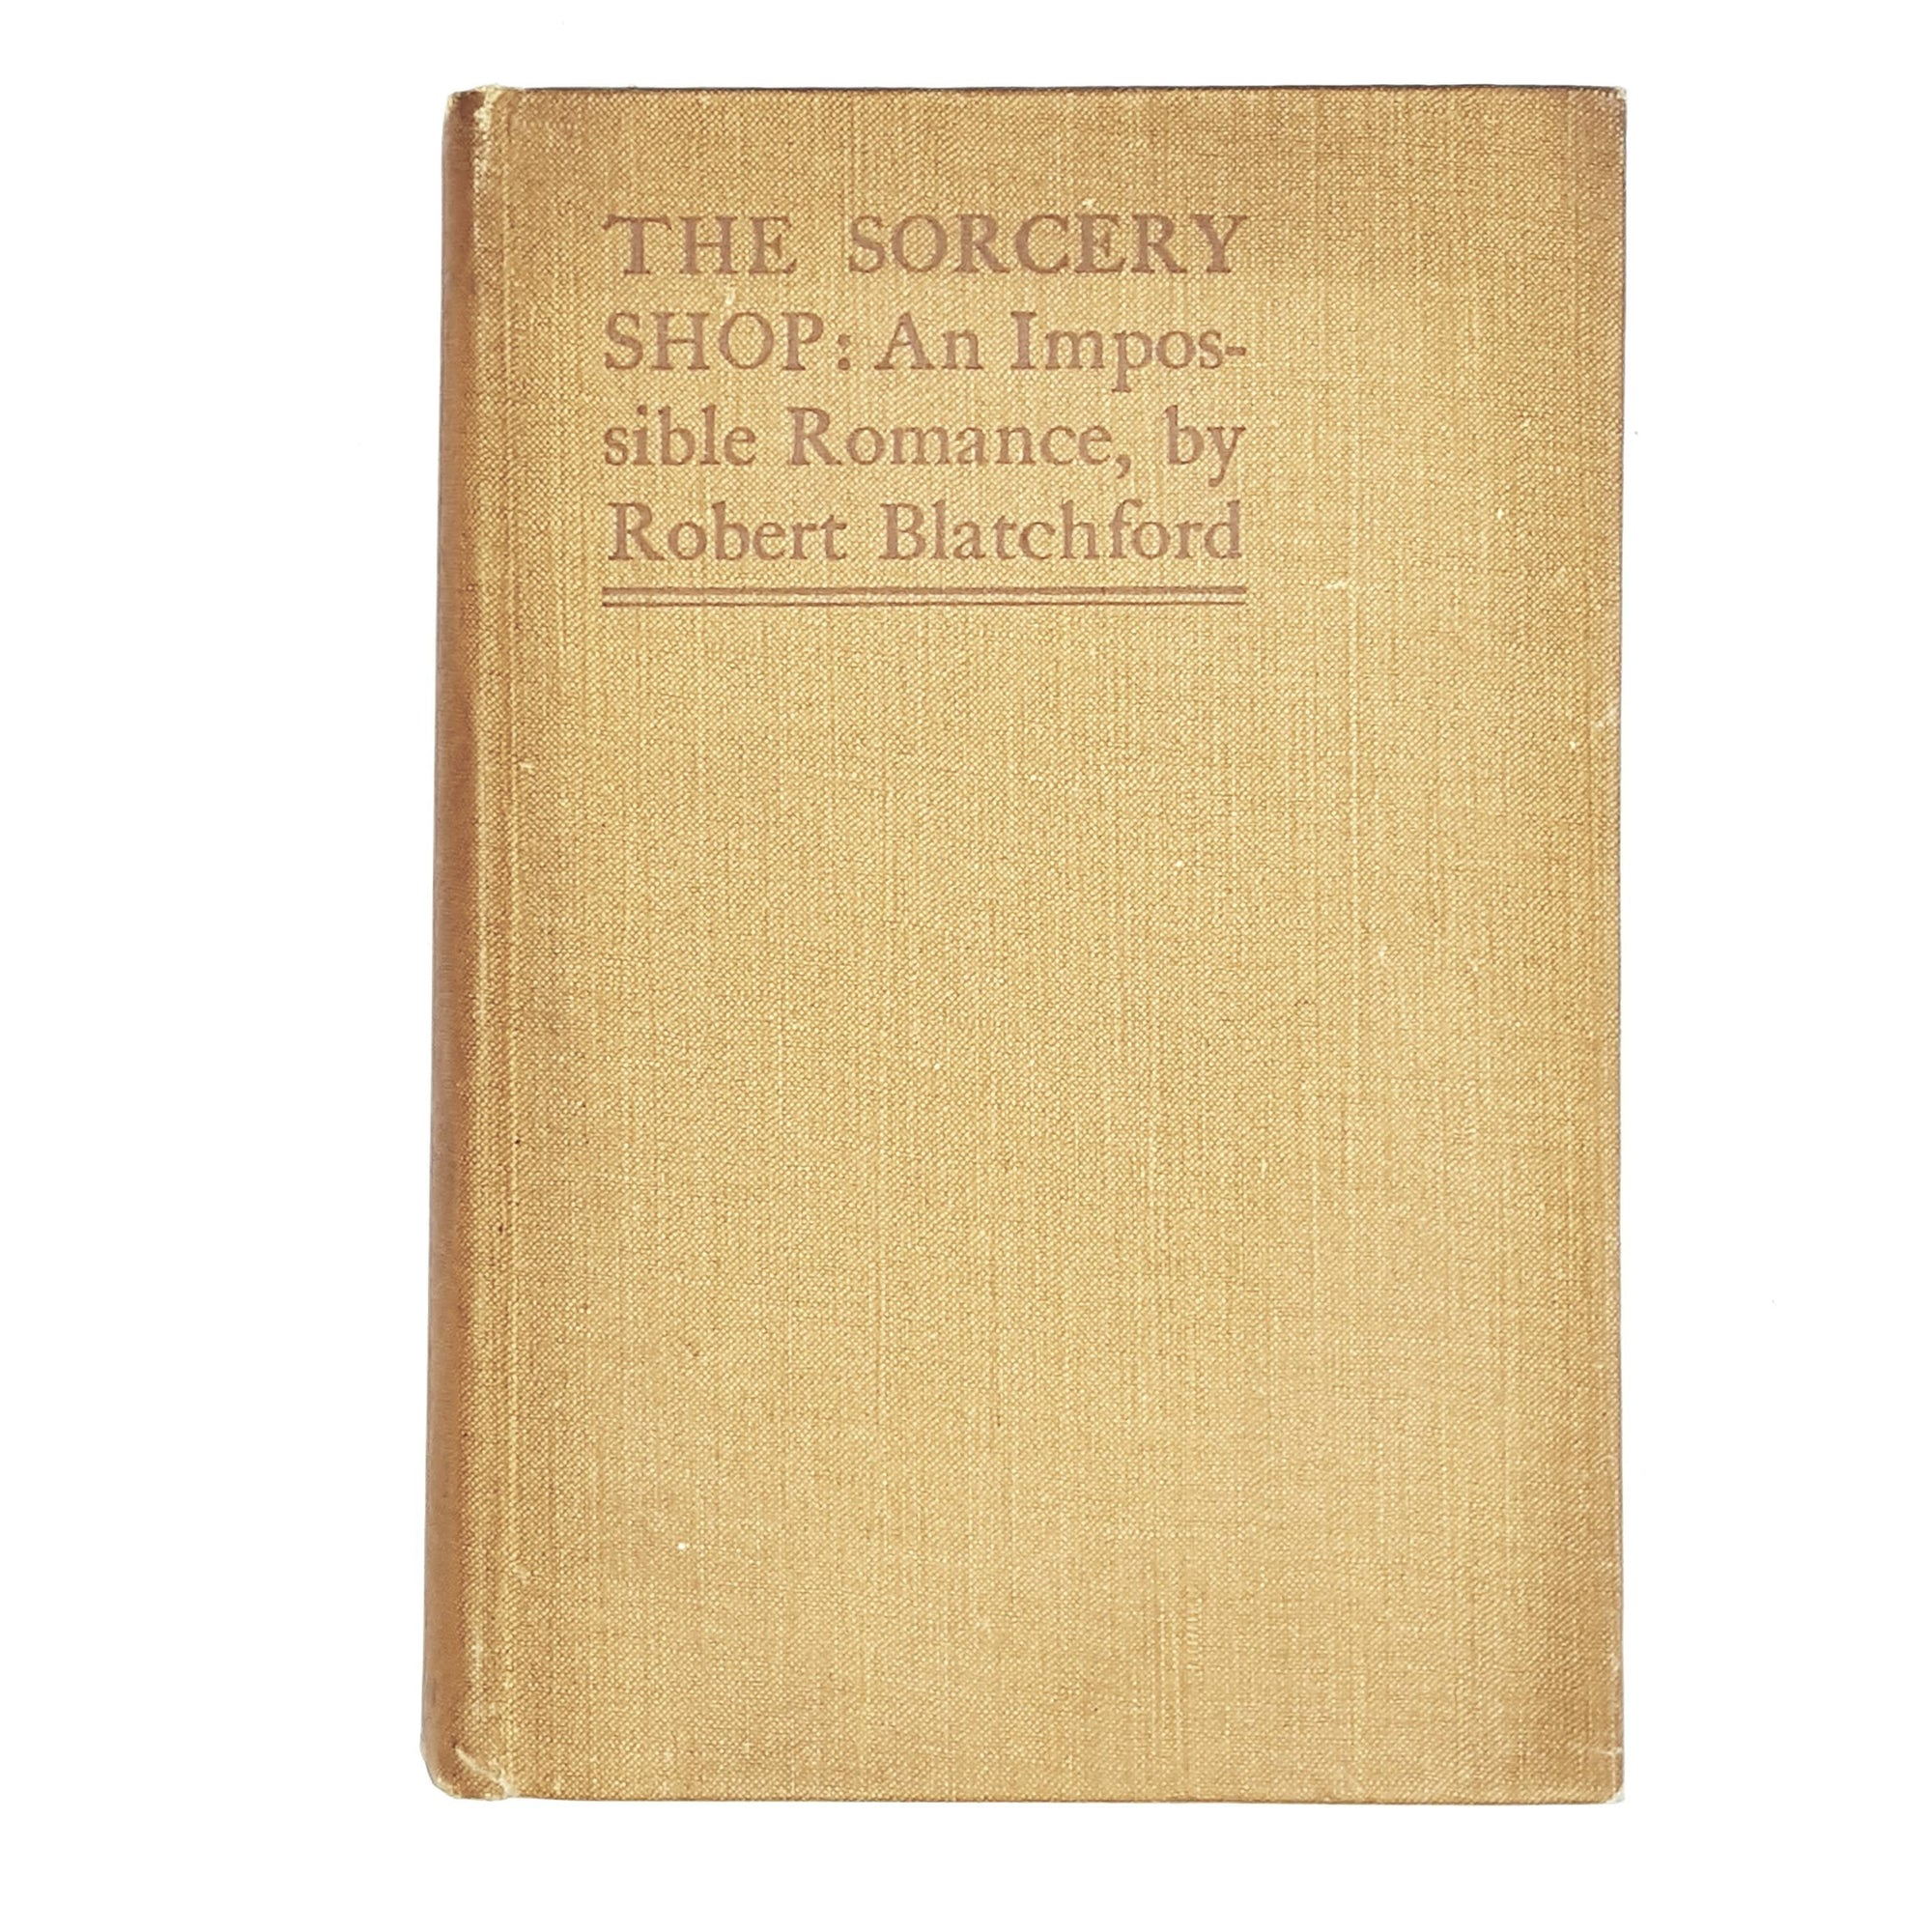 The Sorcery Shop: An Impossible Romance by Robert Blatchford 1907